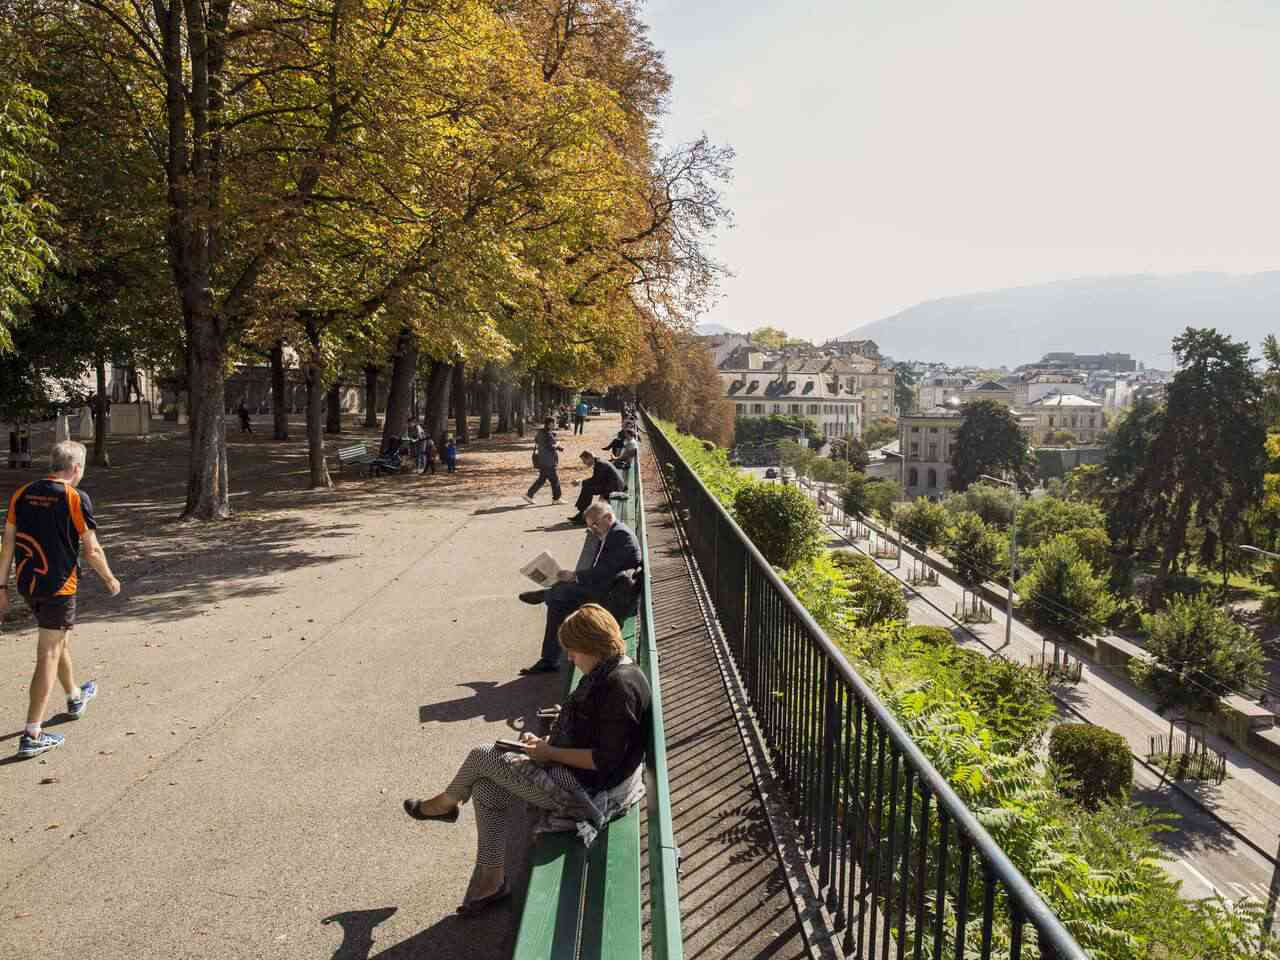 People sitting on the Treille bench on a sunny day